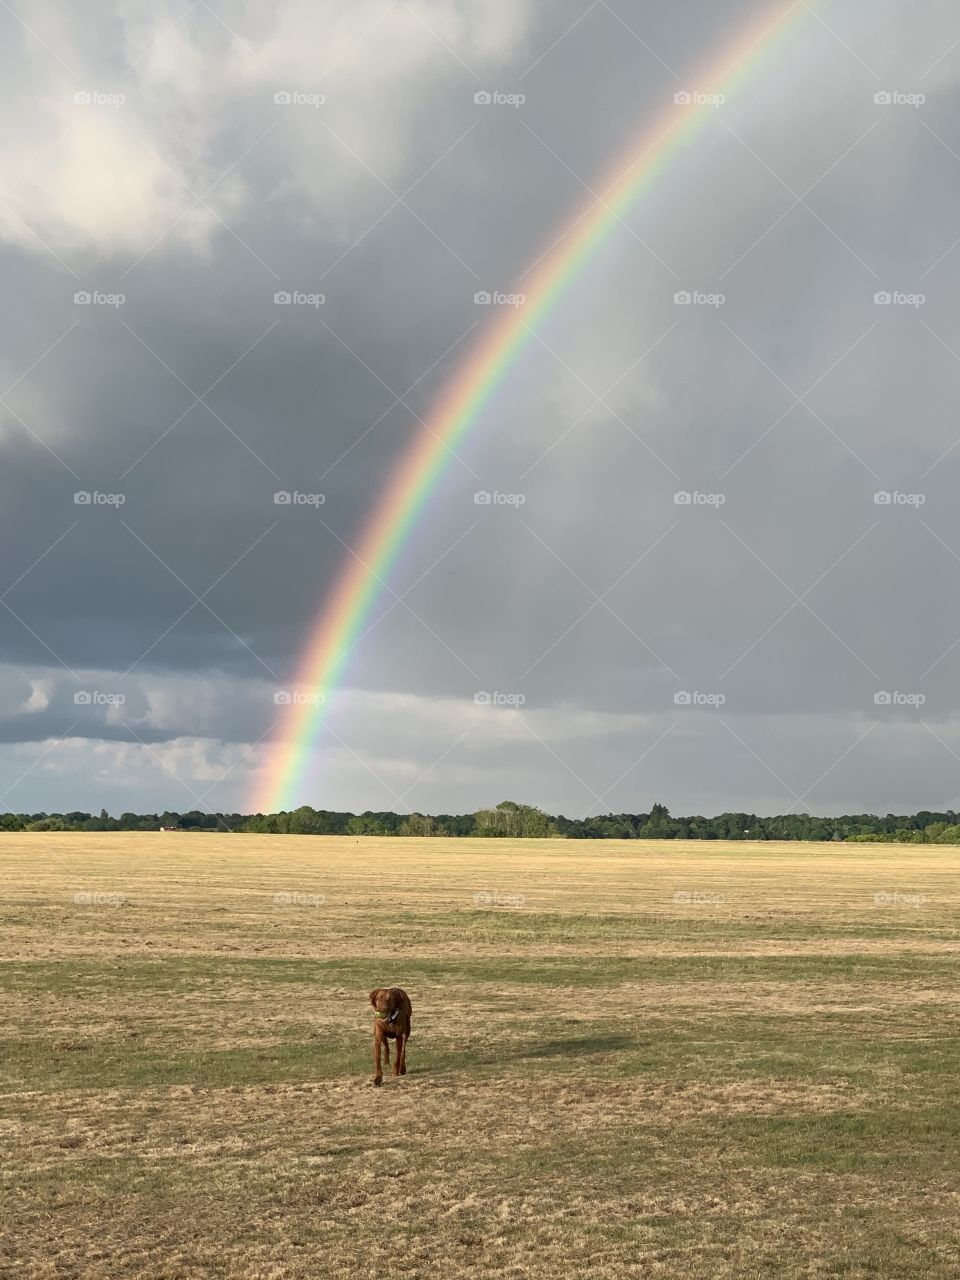 Treasure at the end of a rainbow